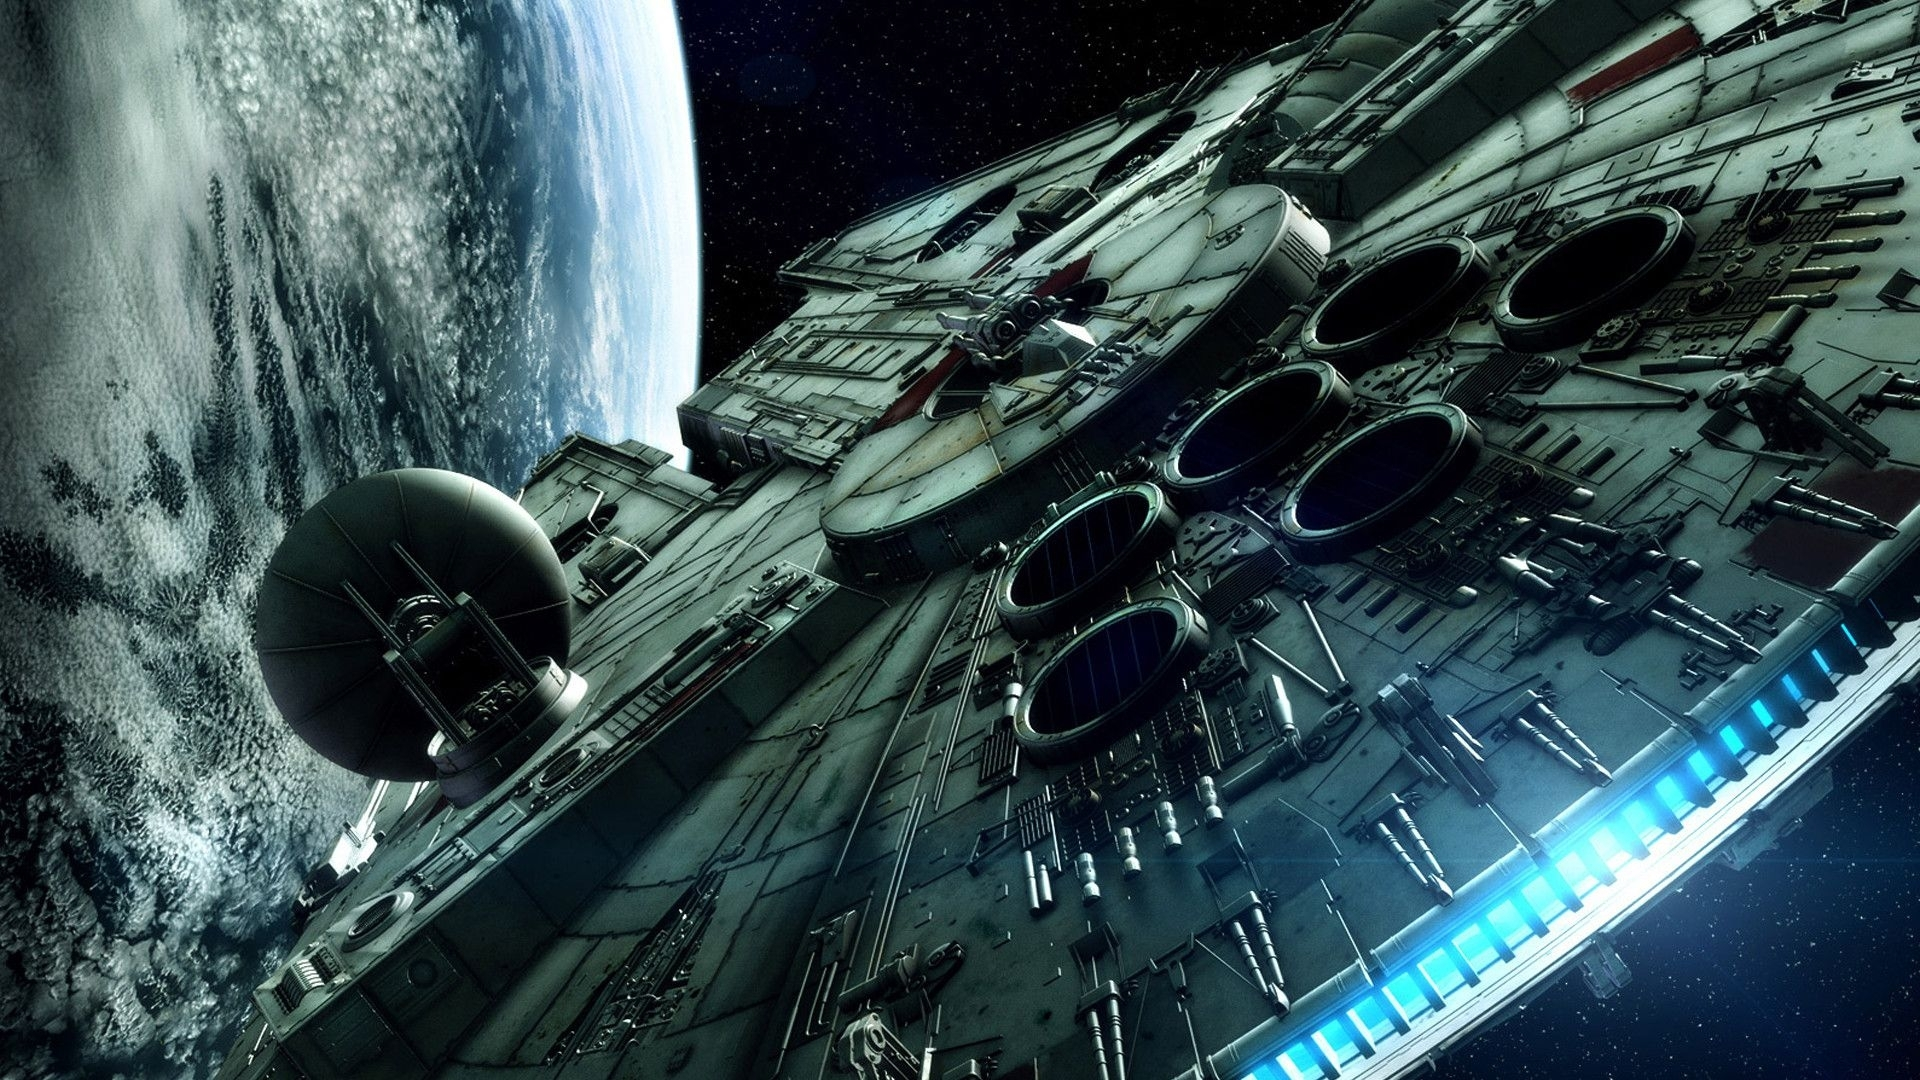 10 Top Star Wars Wallpapers Hd FULL HD 1920×1080 For PC Desktop